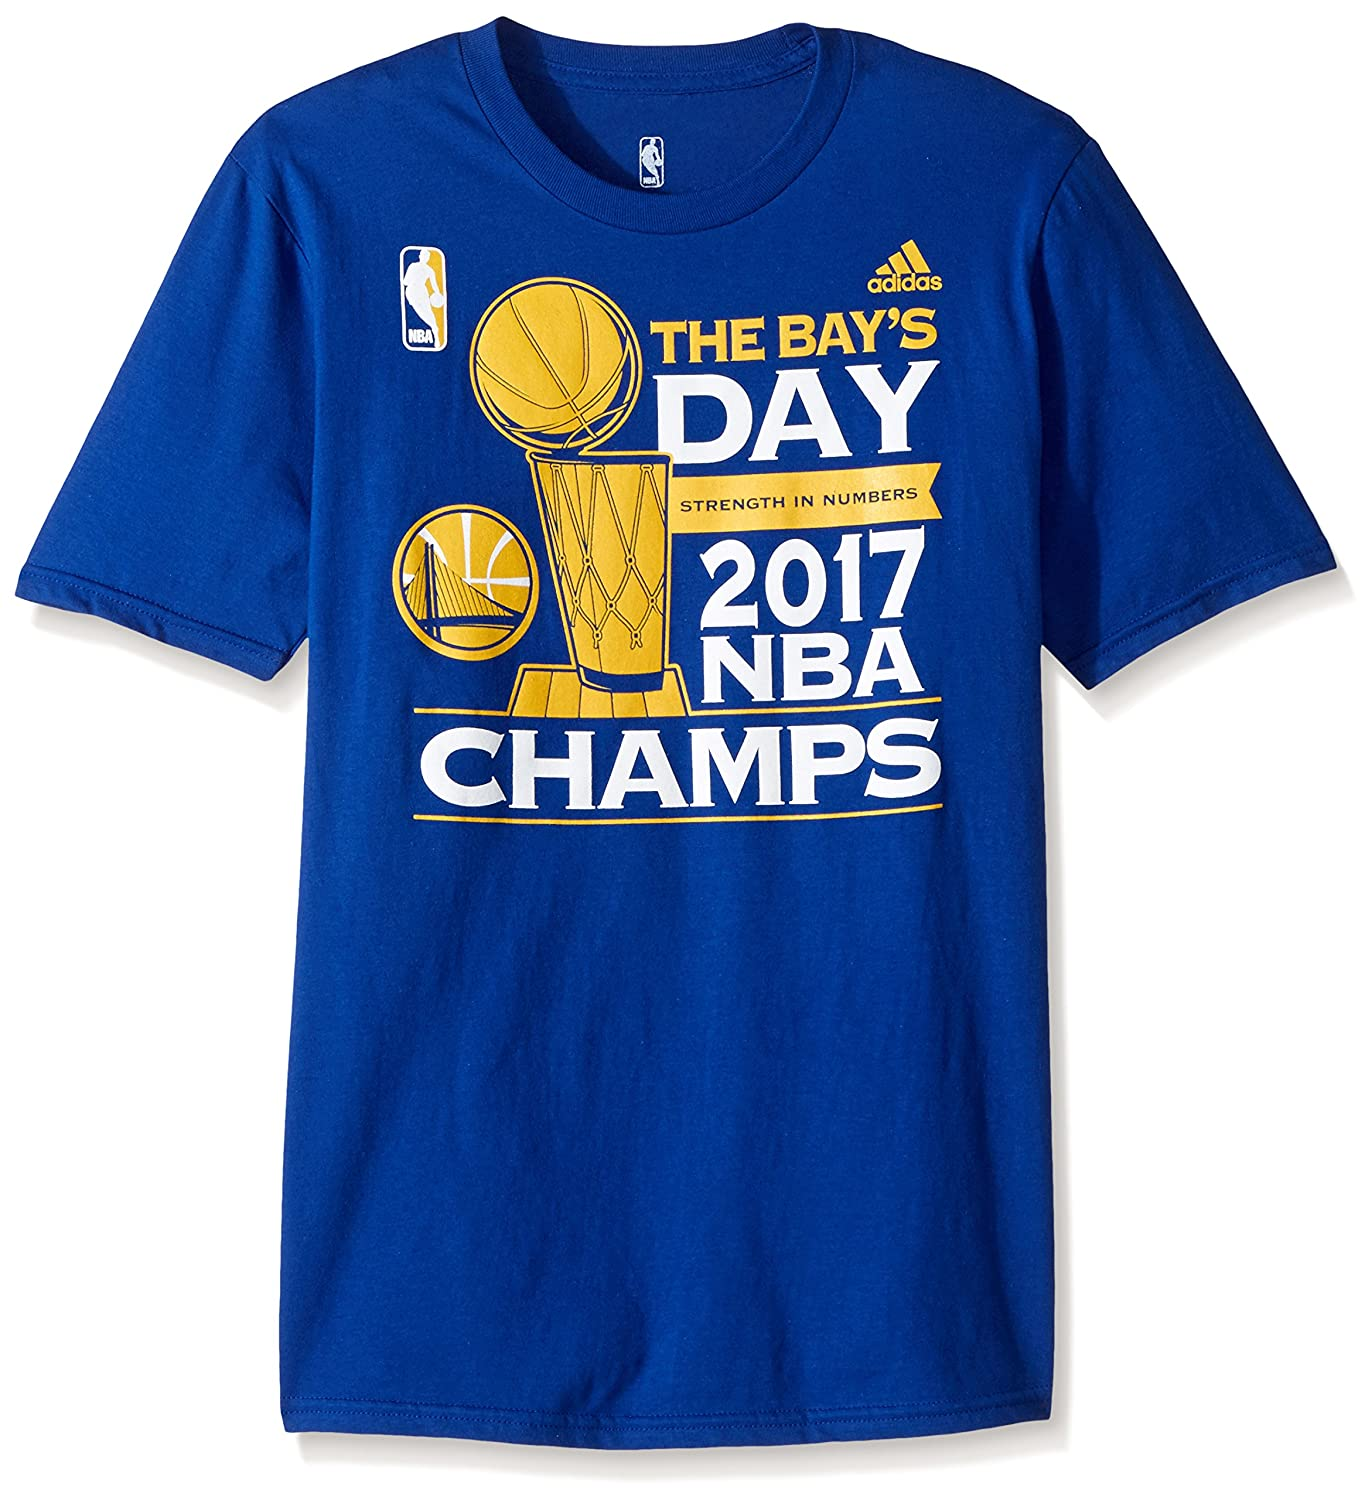 Outerstuff Nba Youth 8-20 Golden State Warriors Championship Parade - Camiseta de manga corta para niño, Niños, R 8PAJFQ, Garnet, Large: Amazon.es: Deportes ...